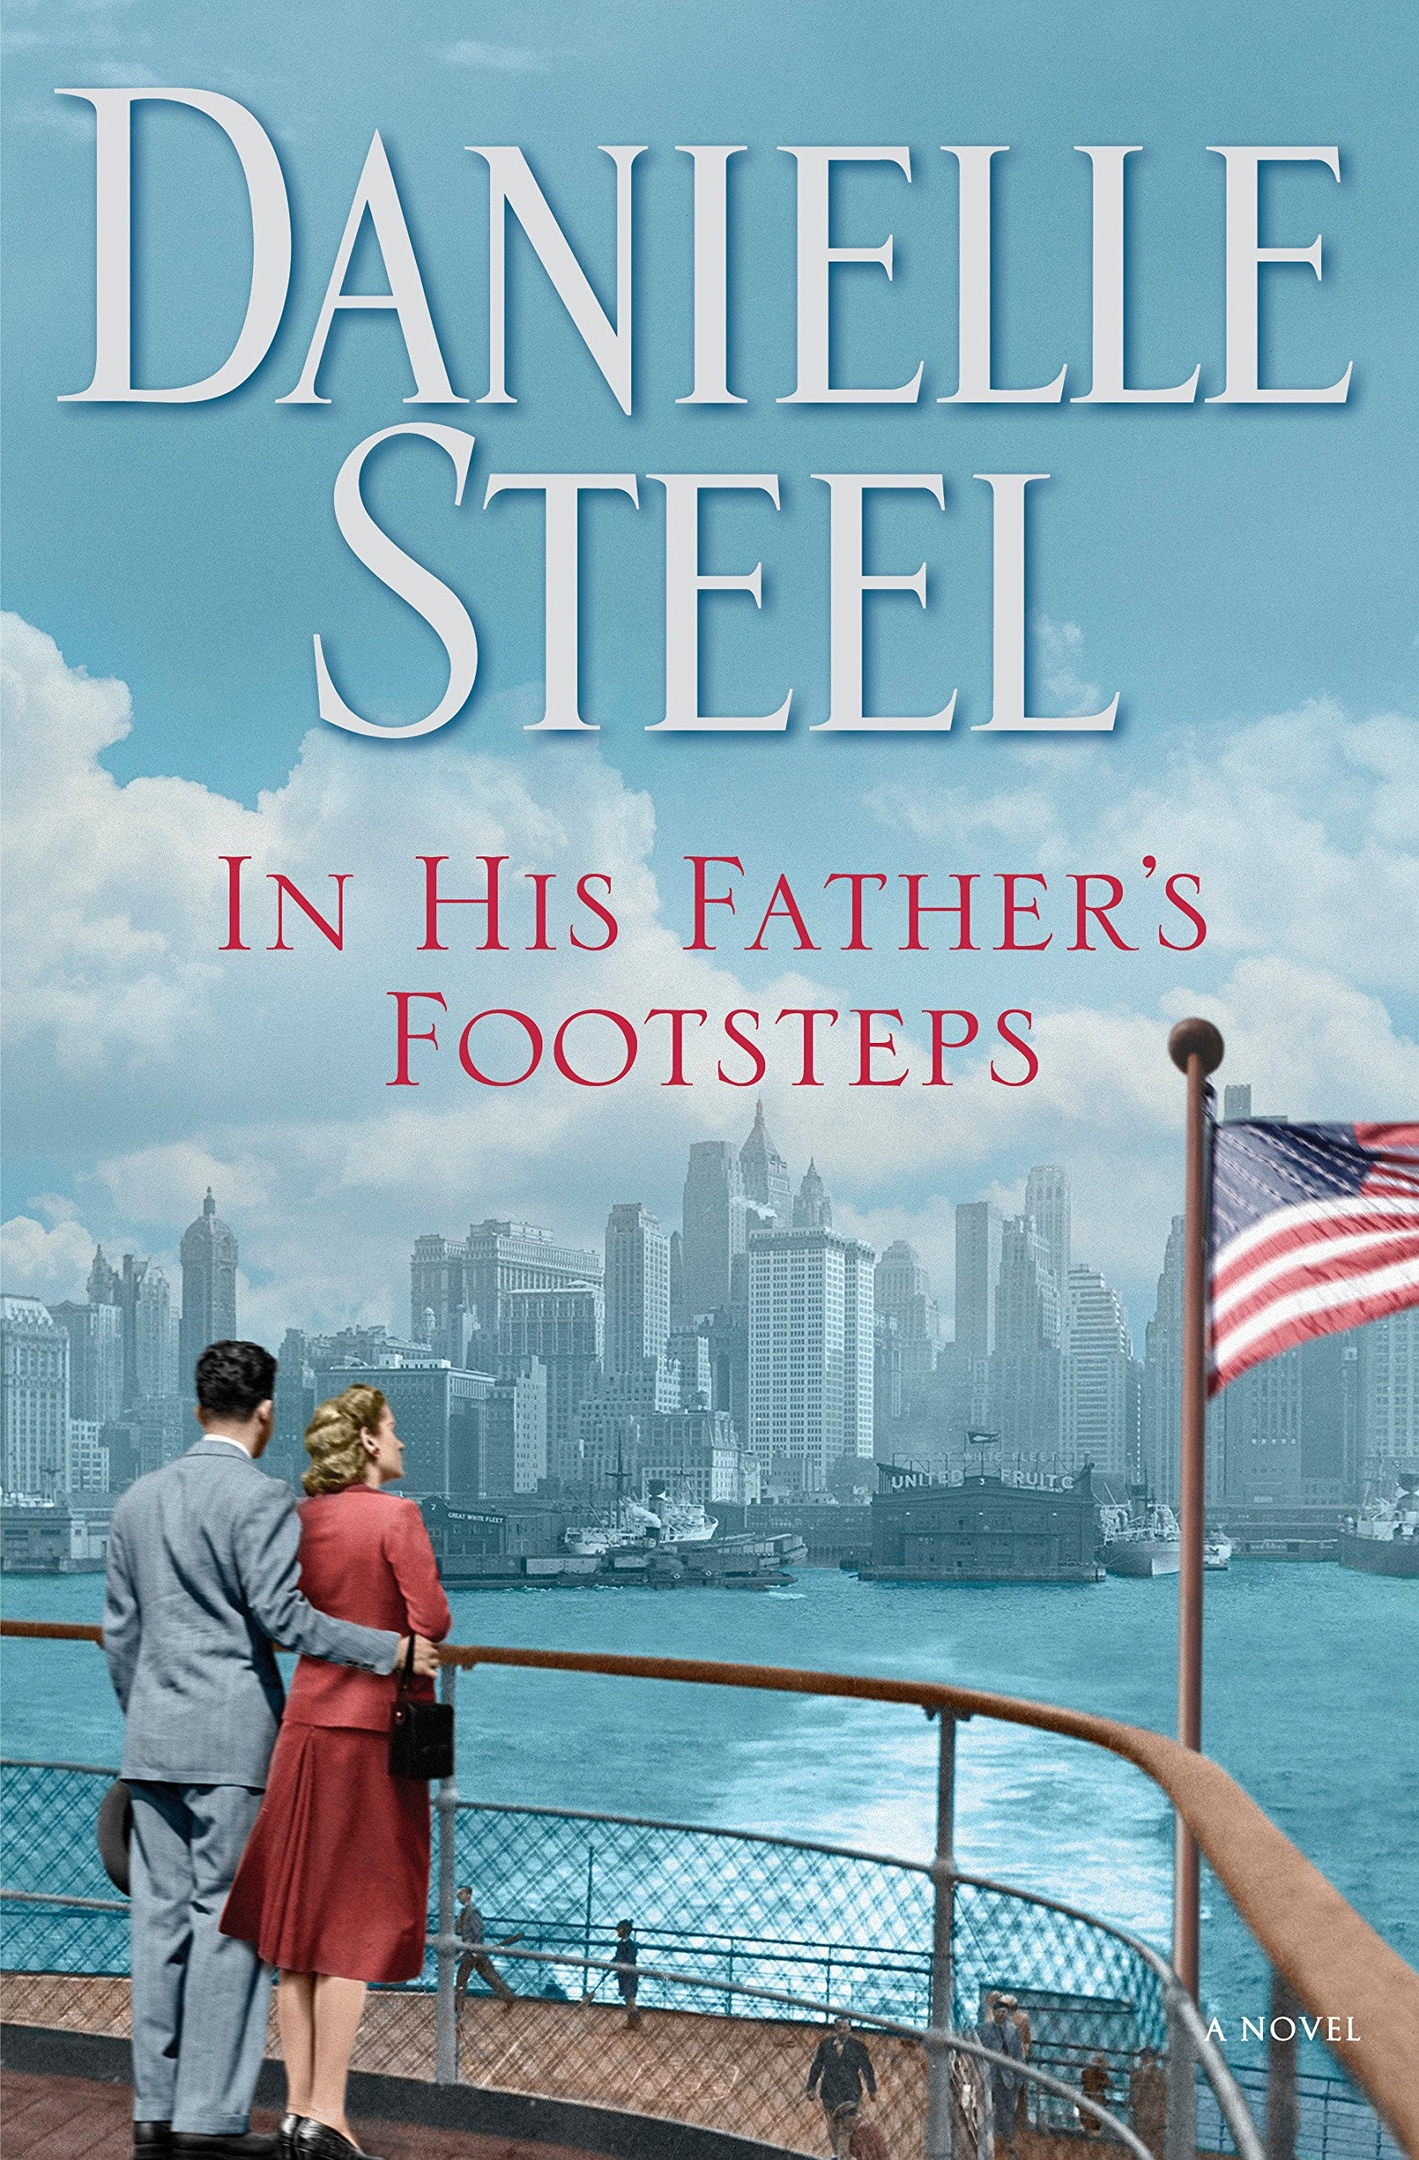 Danielle Steel – In His Father's Footsteps